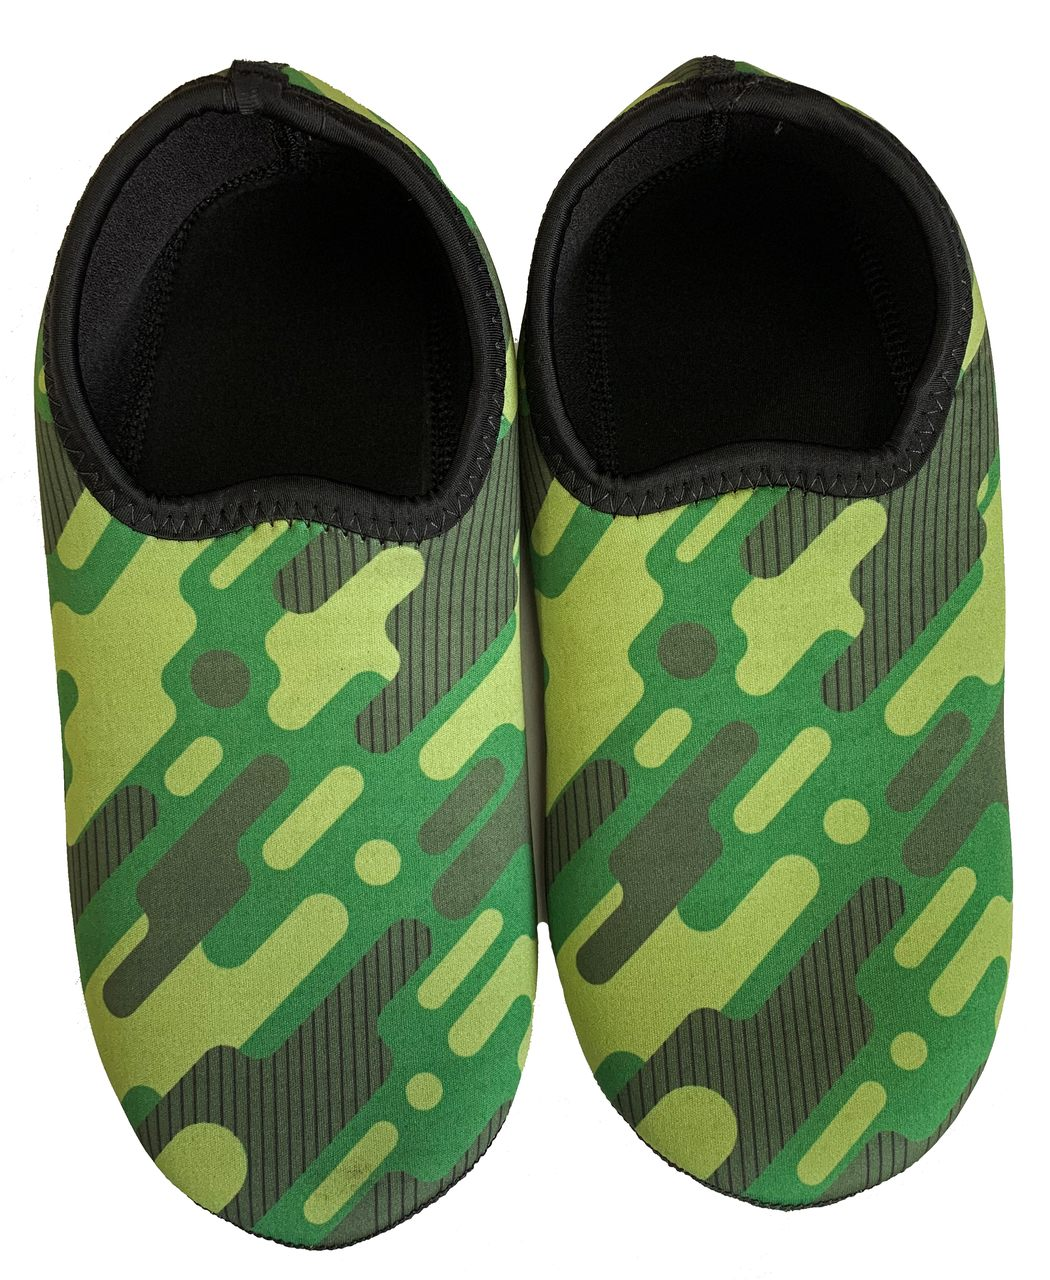 Ufrog Adulto Fit Camuflado